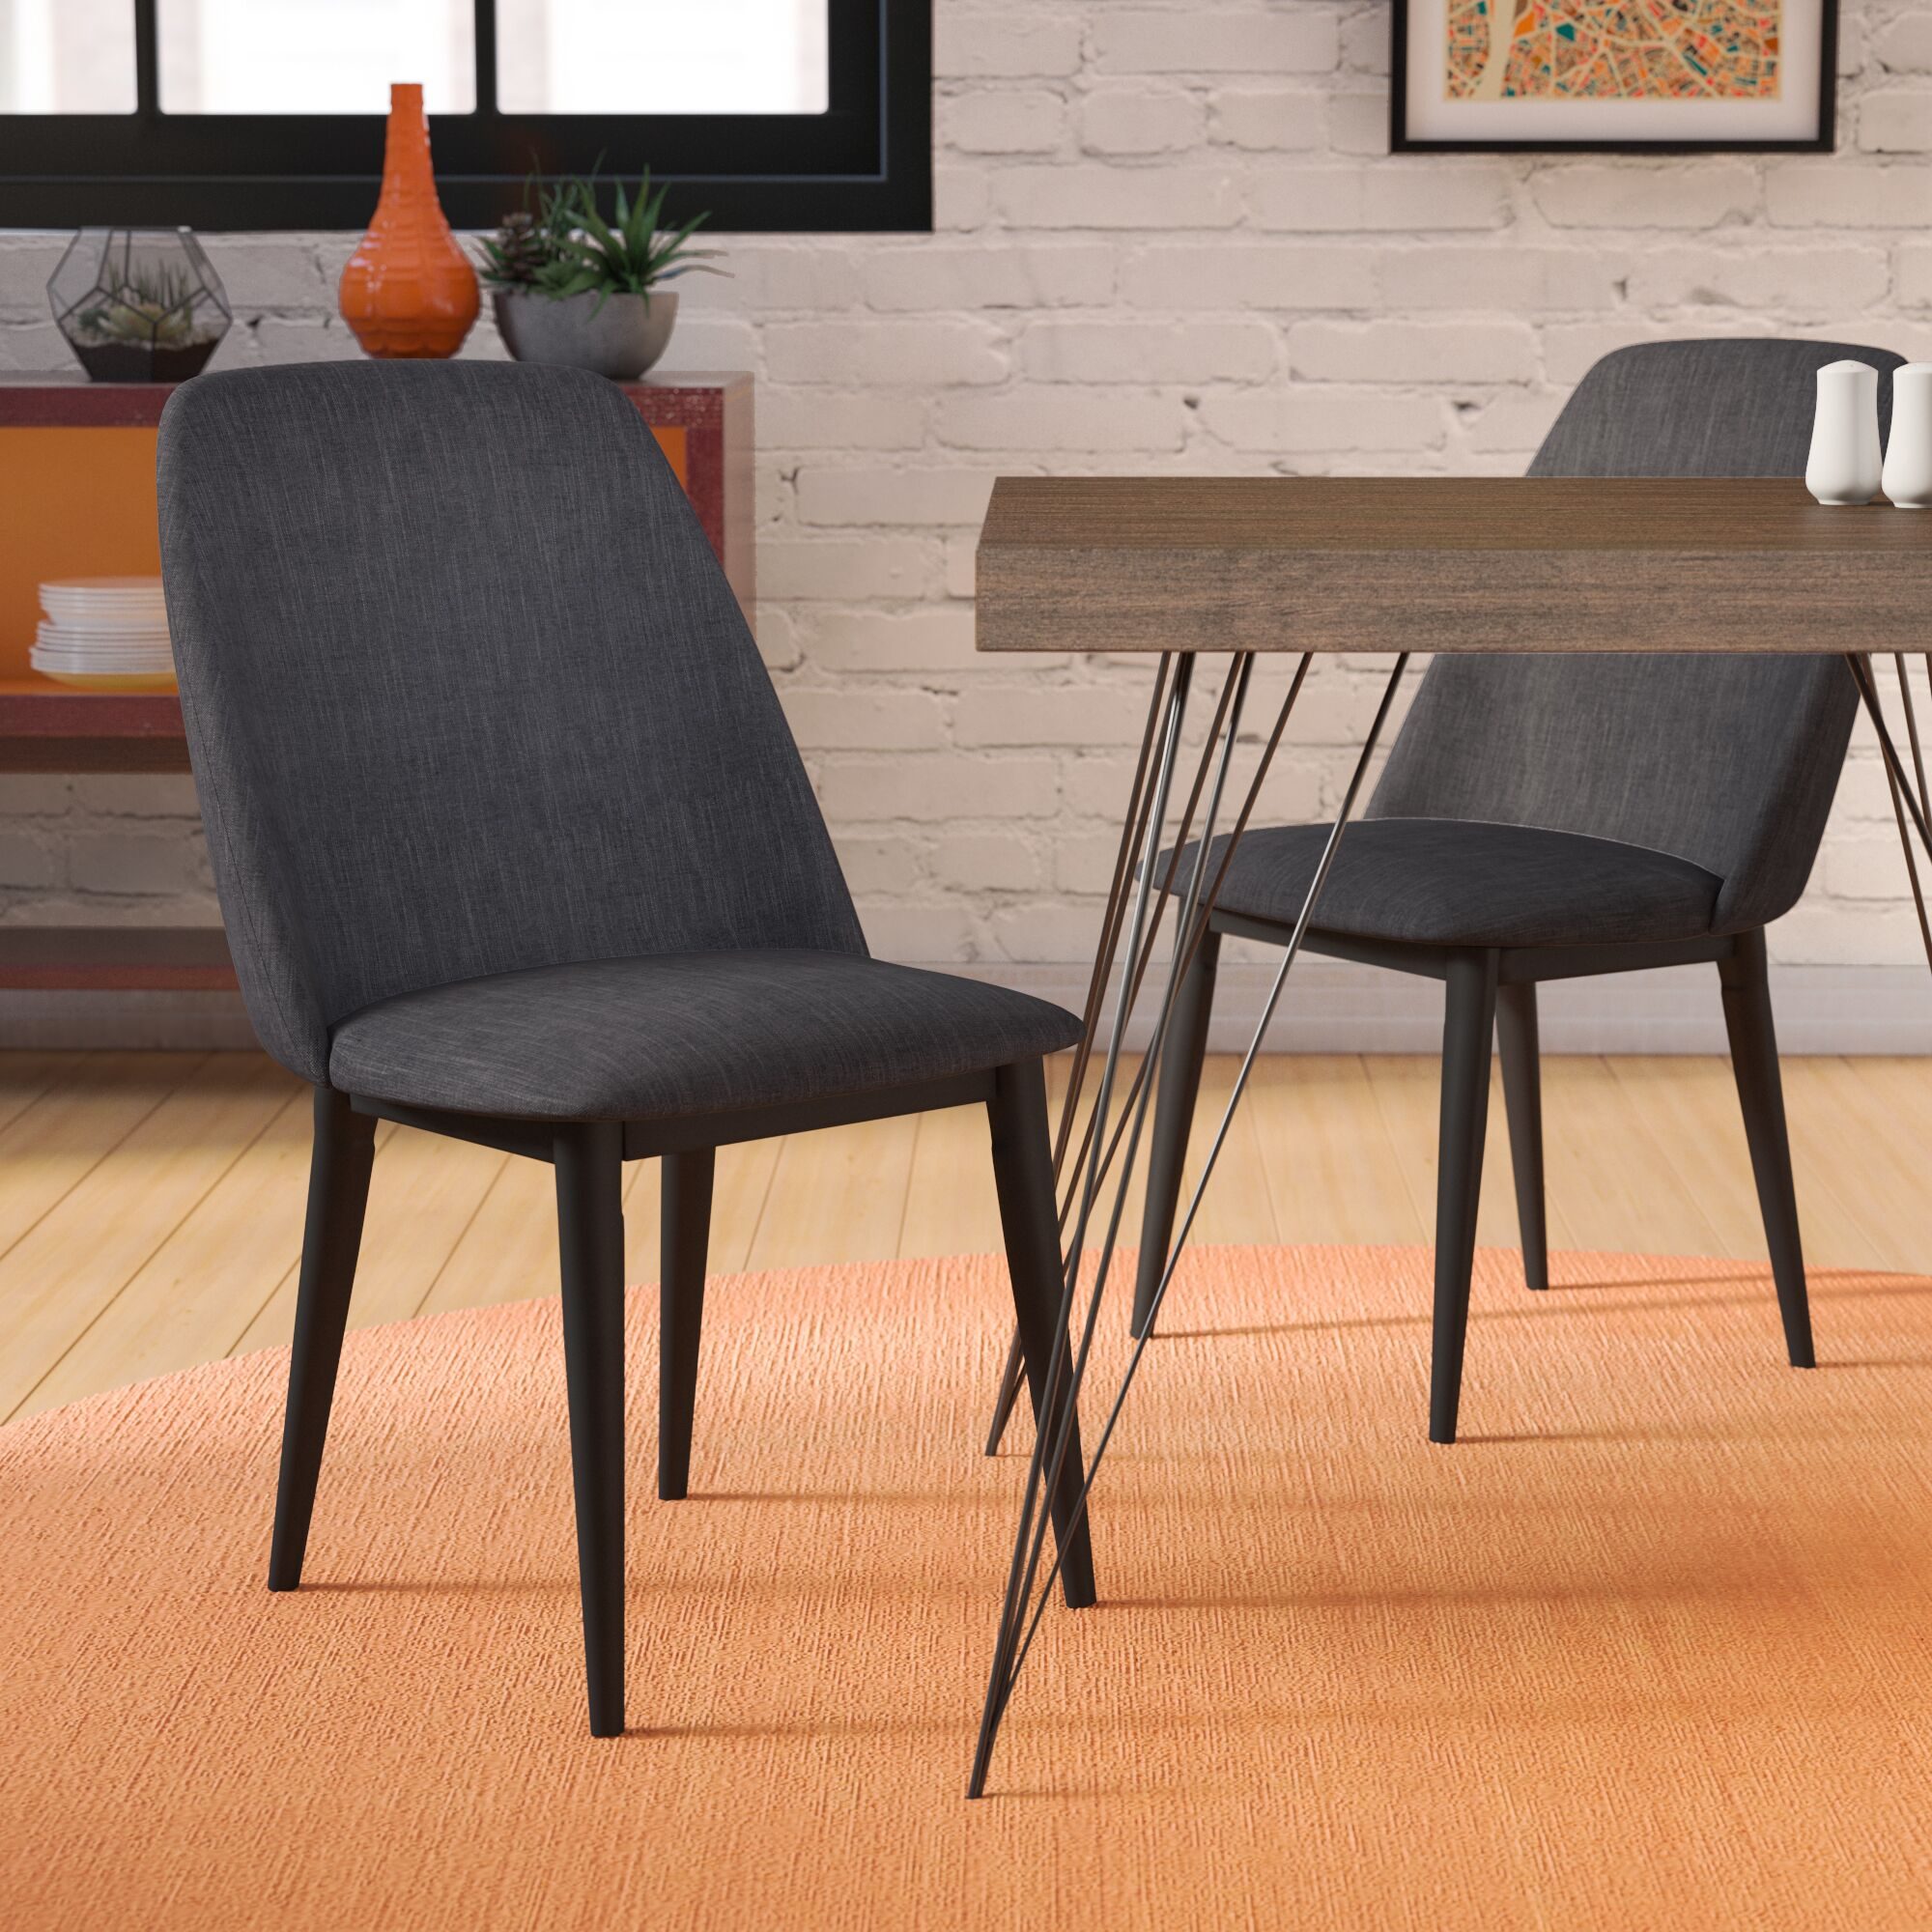 Bemott Upholstered Dining Chair Upholstery Color: Charcoal